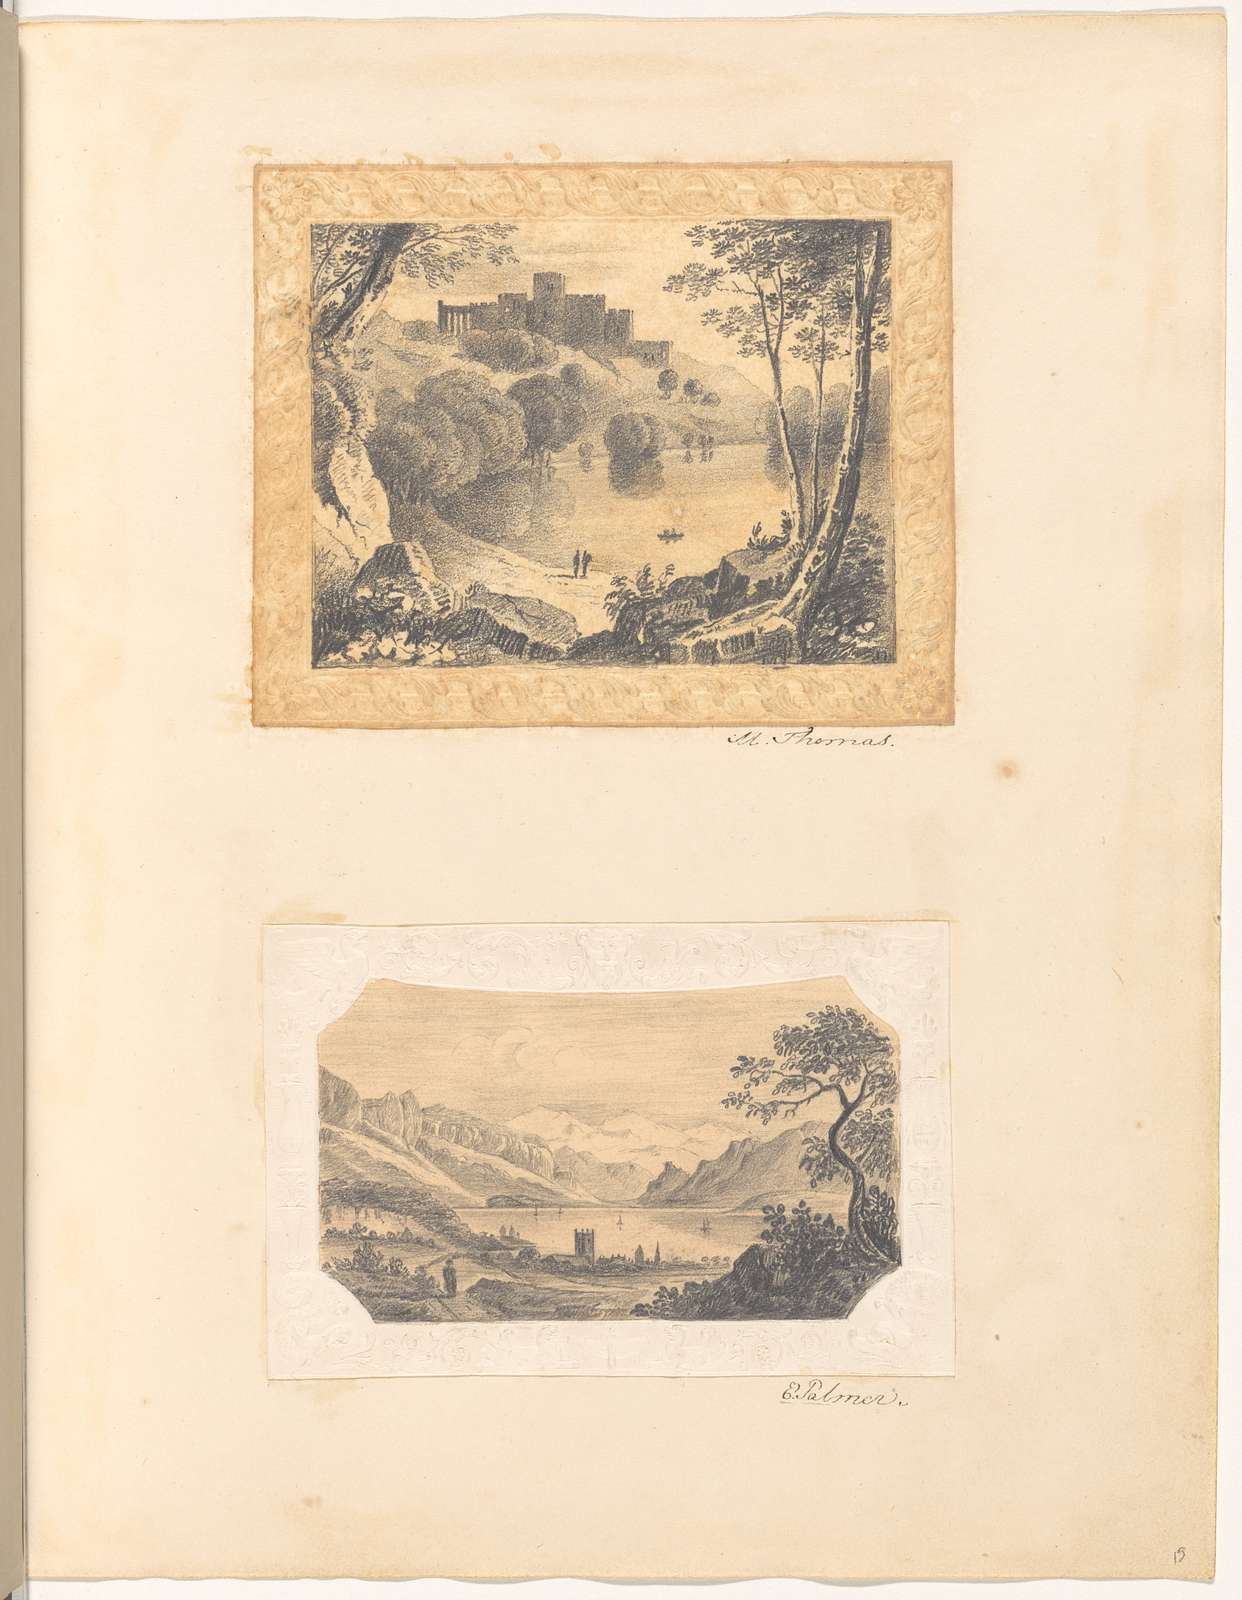 """Mounted pencil landscape with lake and castle, signed """"M. Thomas""""; mounted pencil landscape with lake, castle and mountains, signed """"E. Palmer"""", leaf 15 (recto)"""